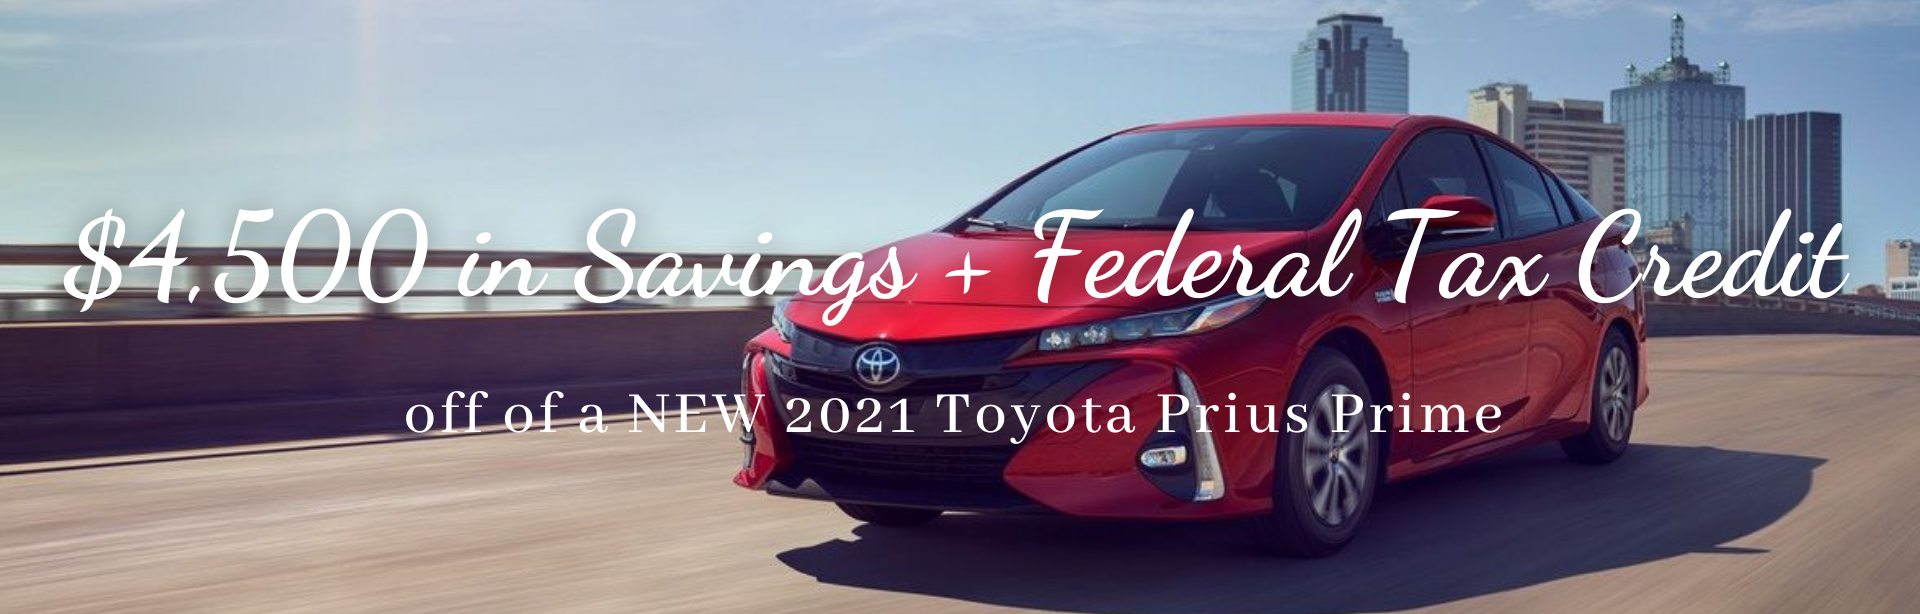 Why buy used, when you get $7,500 of available savings off of a NEW 2021 Toyota Prius Prime_ (6)